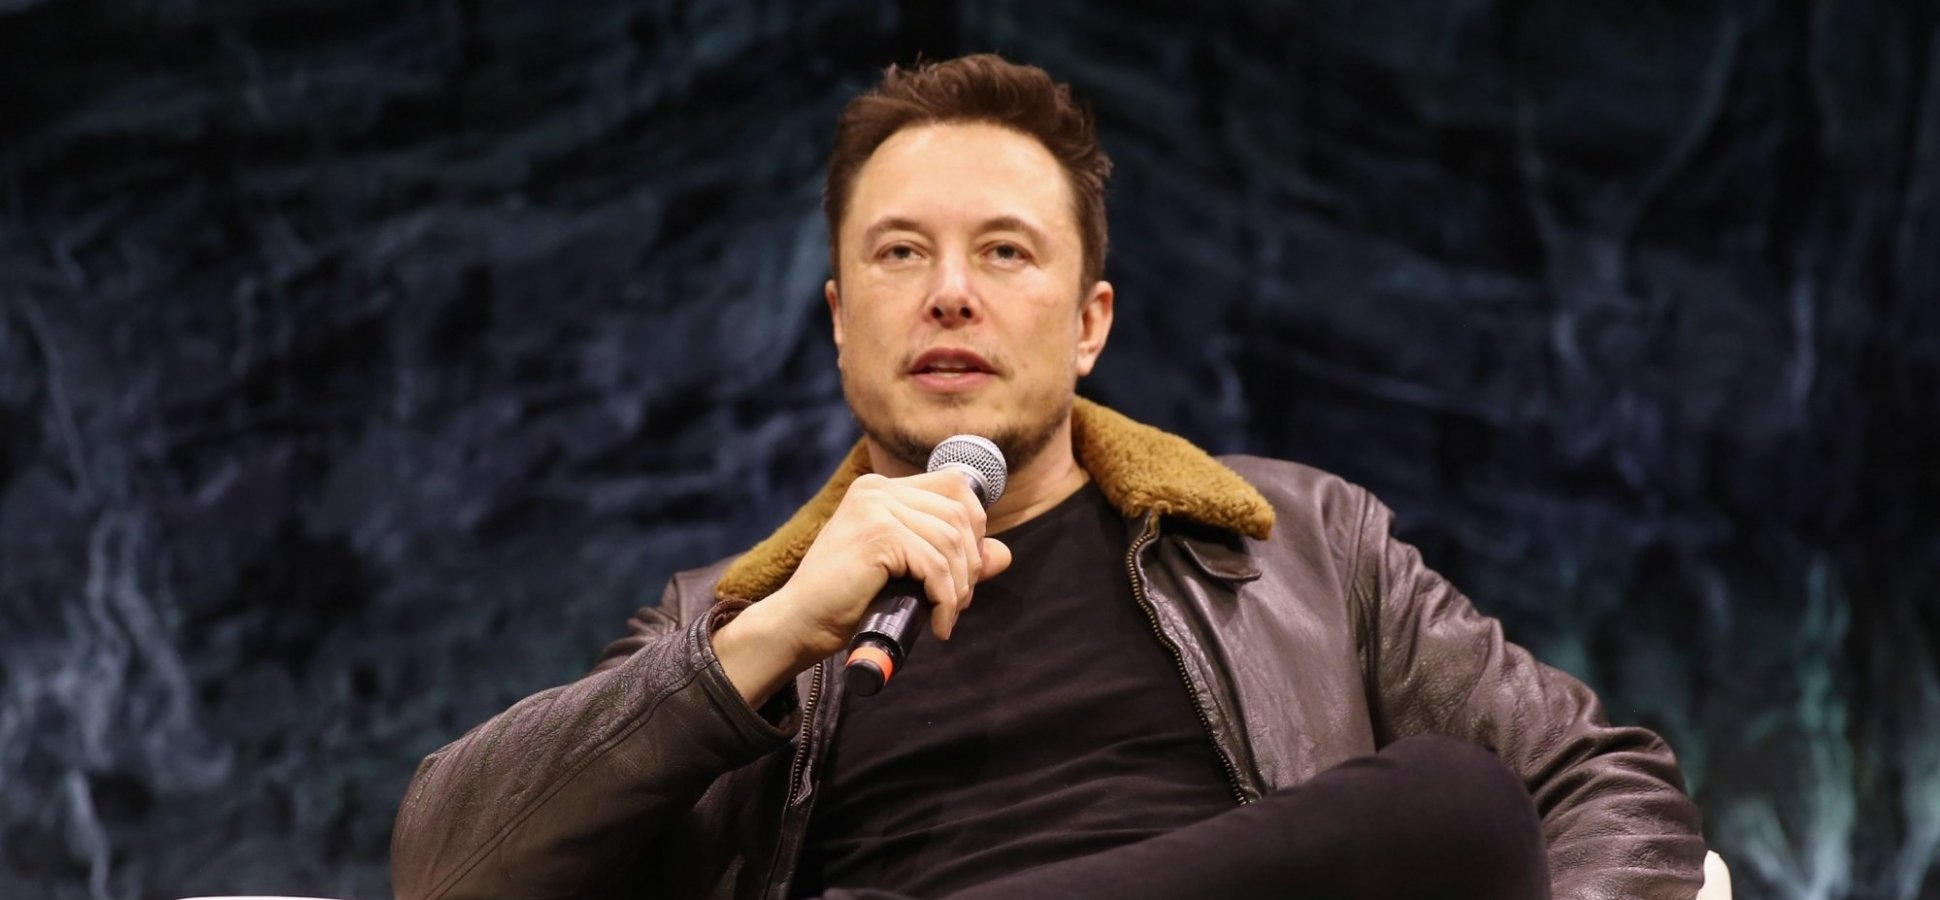 Elon Musk Knows How to Run a Meeting. Here's How He Does It